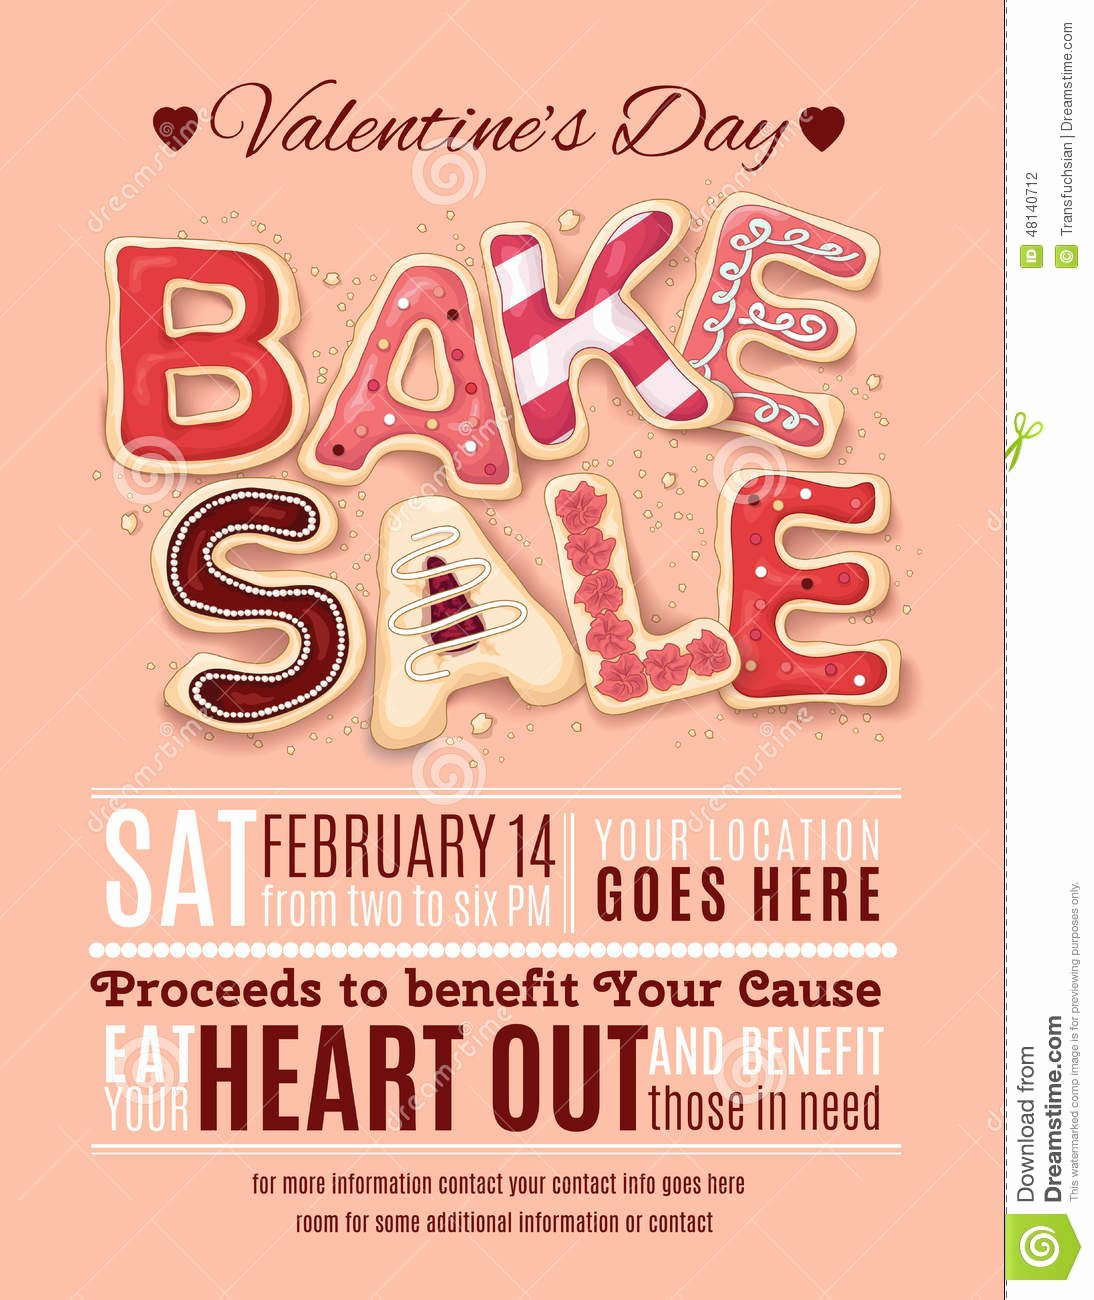 Bake Sale Flyer Templates Free New Valentines Day Bake Sale Flyer Template Stock Vector